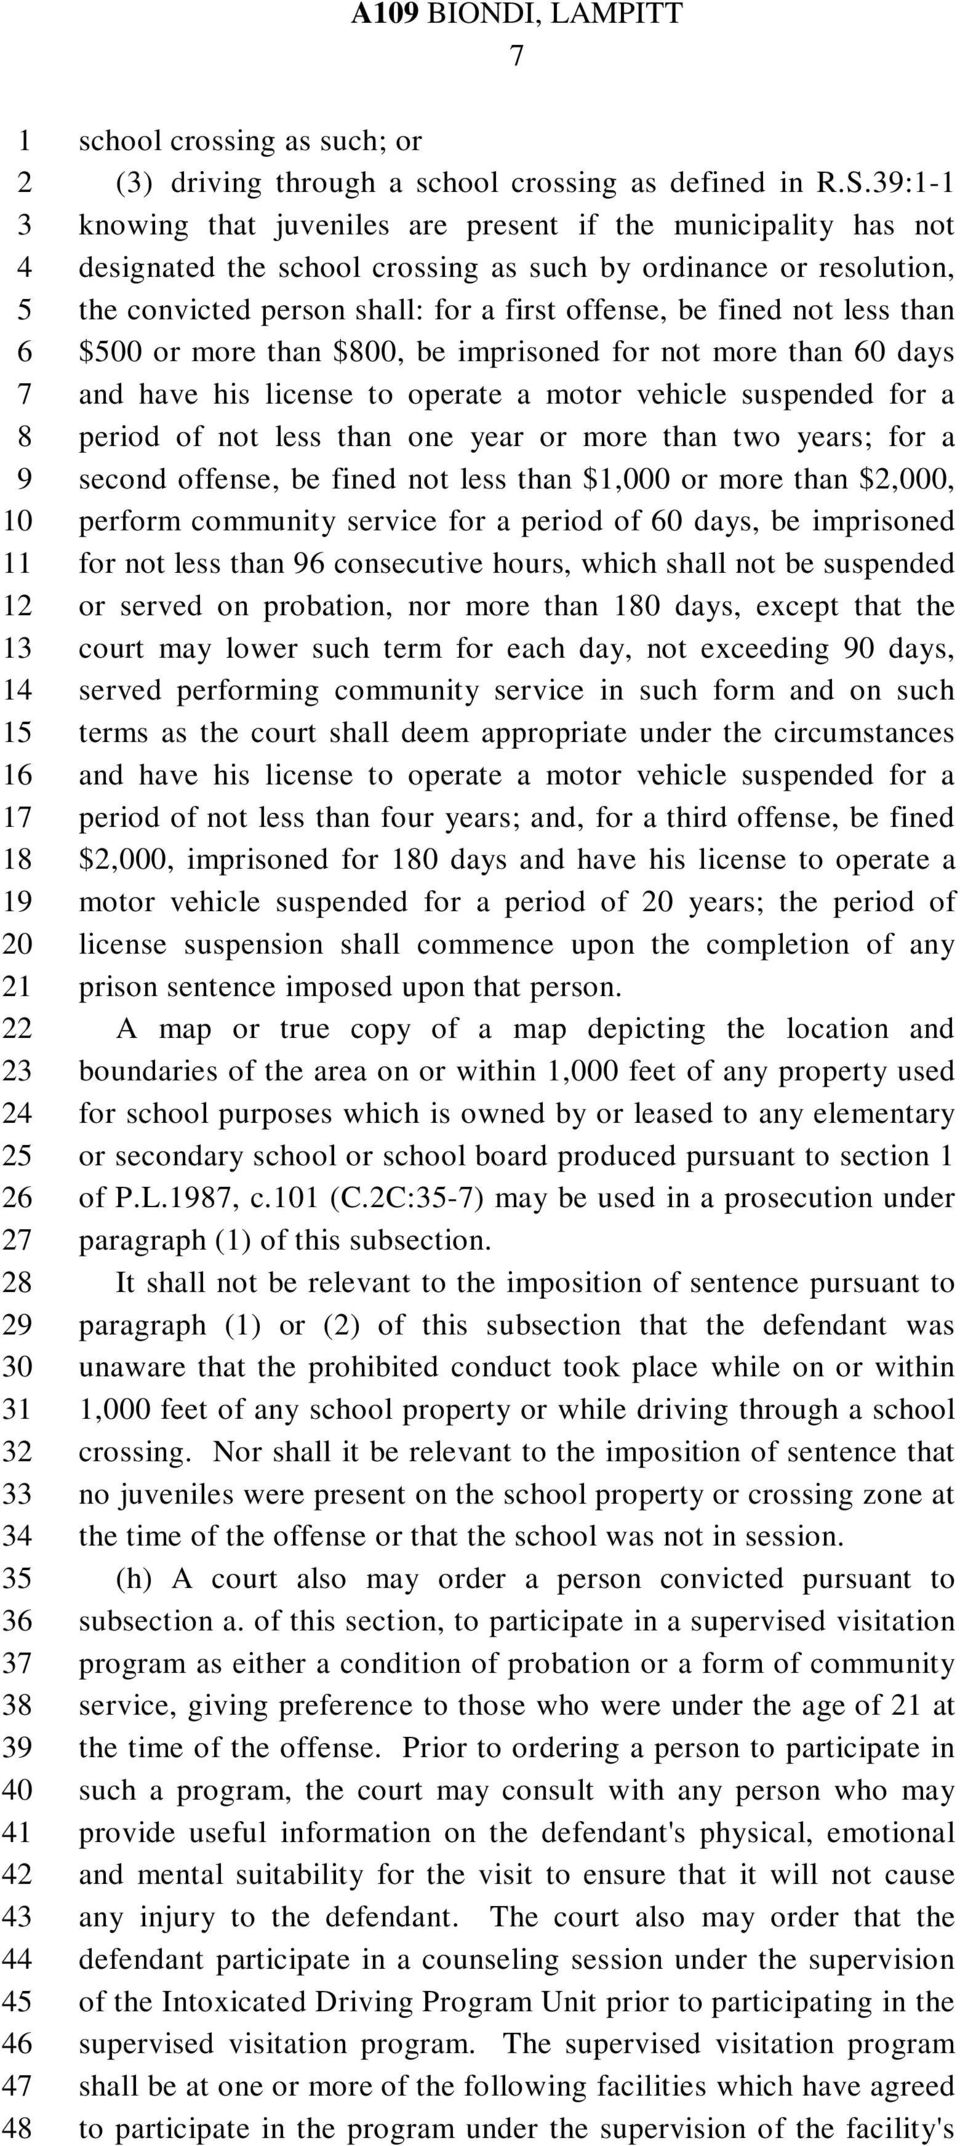 than $00 or more than $00, be imprisoned for not more than 0 days and have his license to operate a motor vehicle suspended for a period of not less than one year or more than two years; for a second